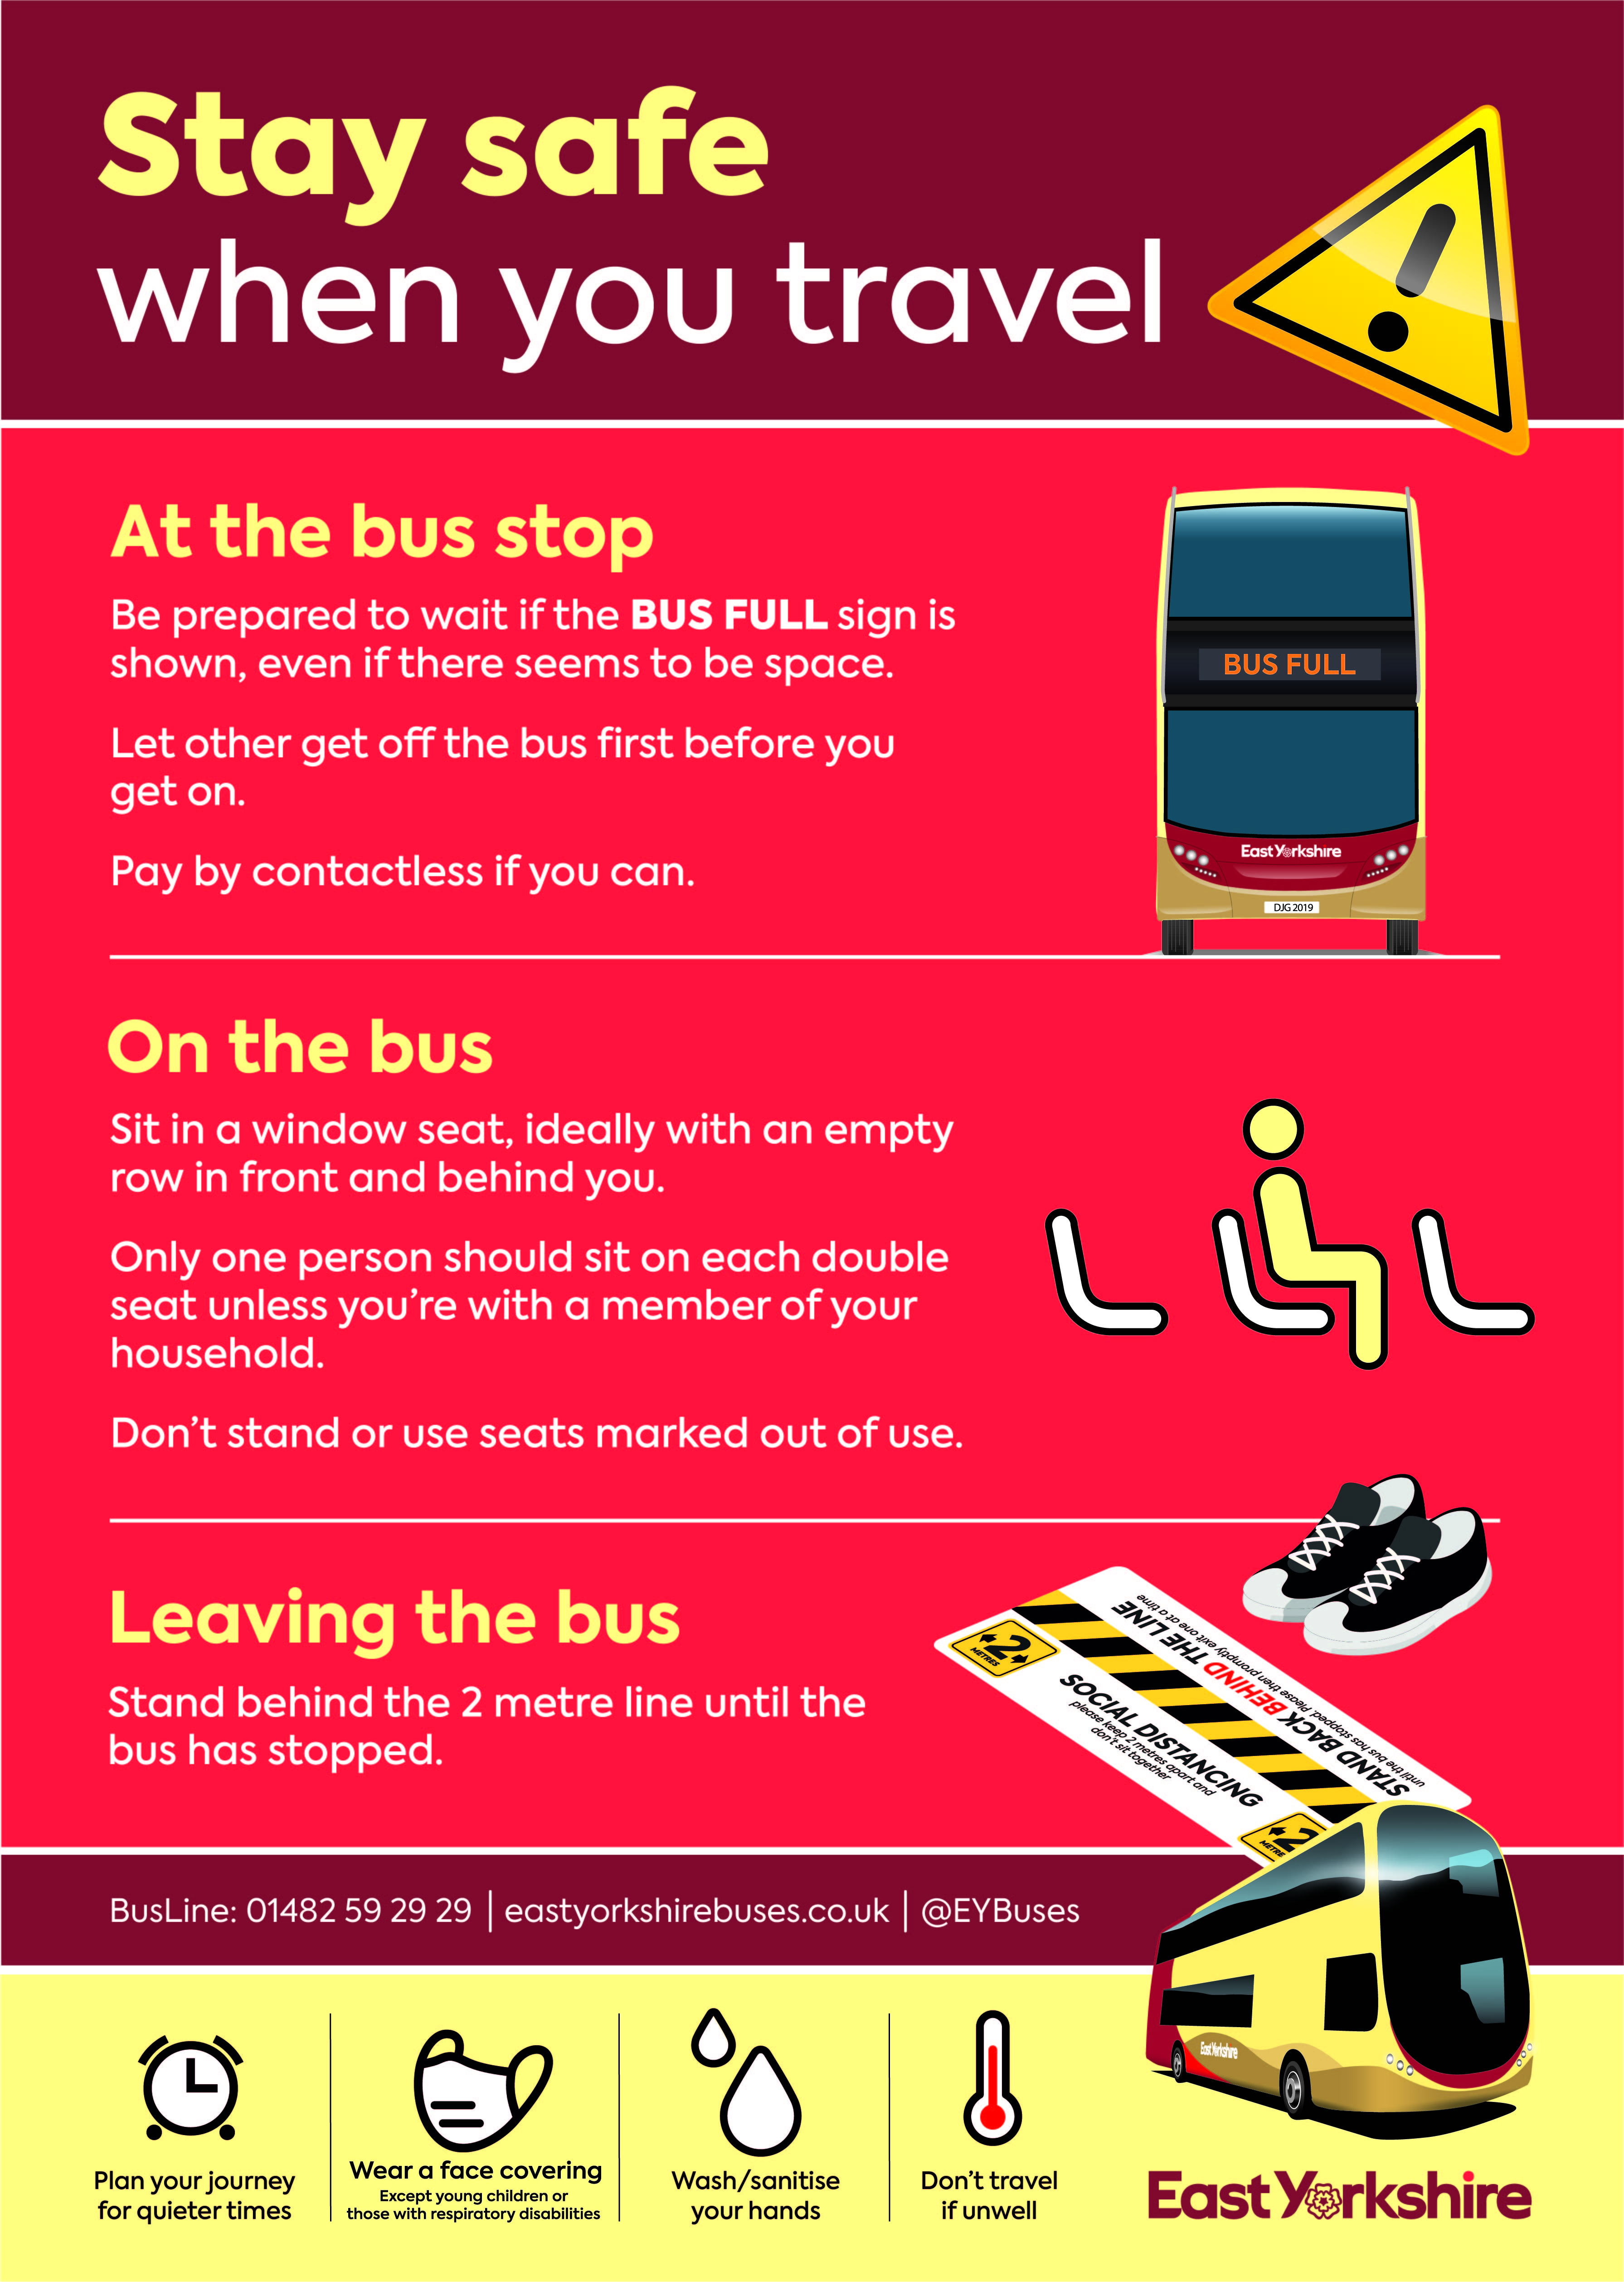 Staying safe on the bus